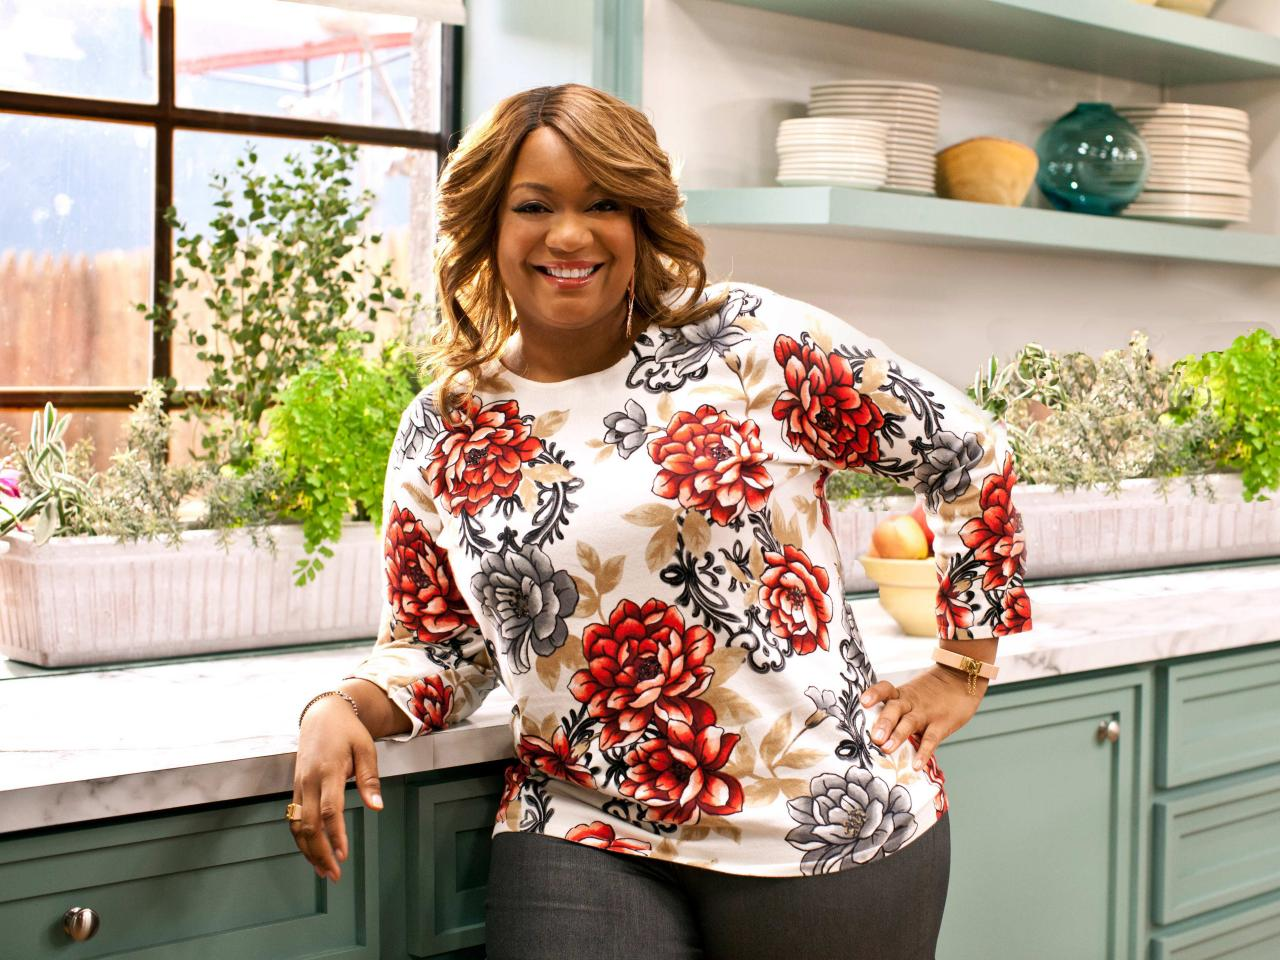 The Kitchen Food Network Cast sunny anderson bio | sunny anderson | food network